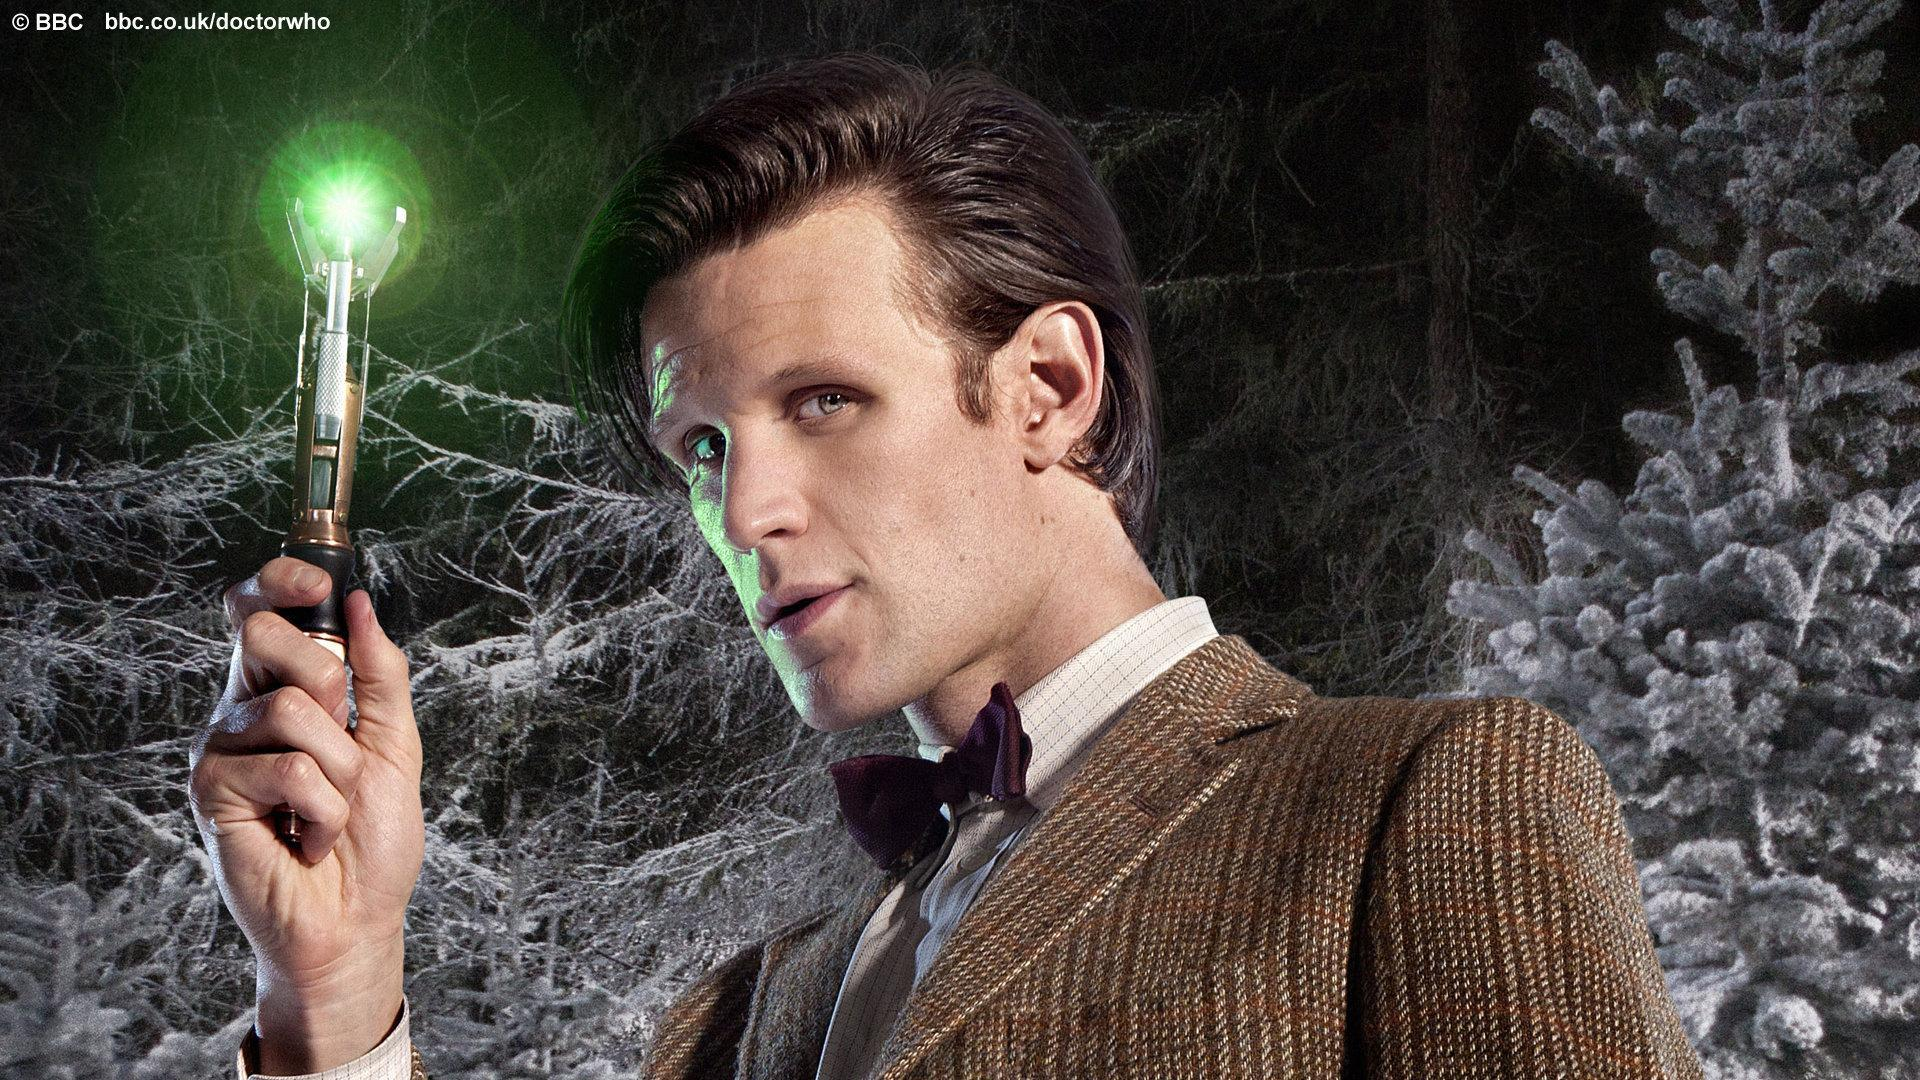 Doctor Who : 11 best episodes of the Eleventh Doctor